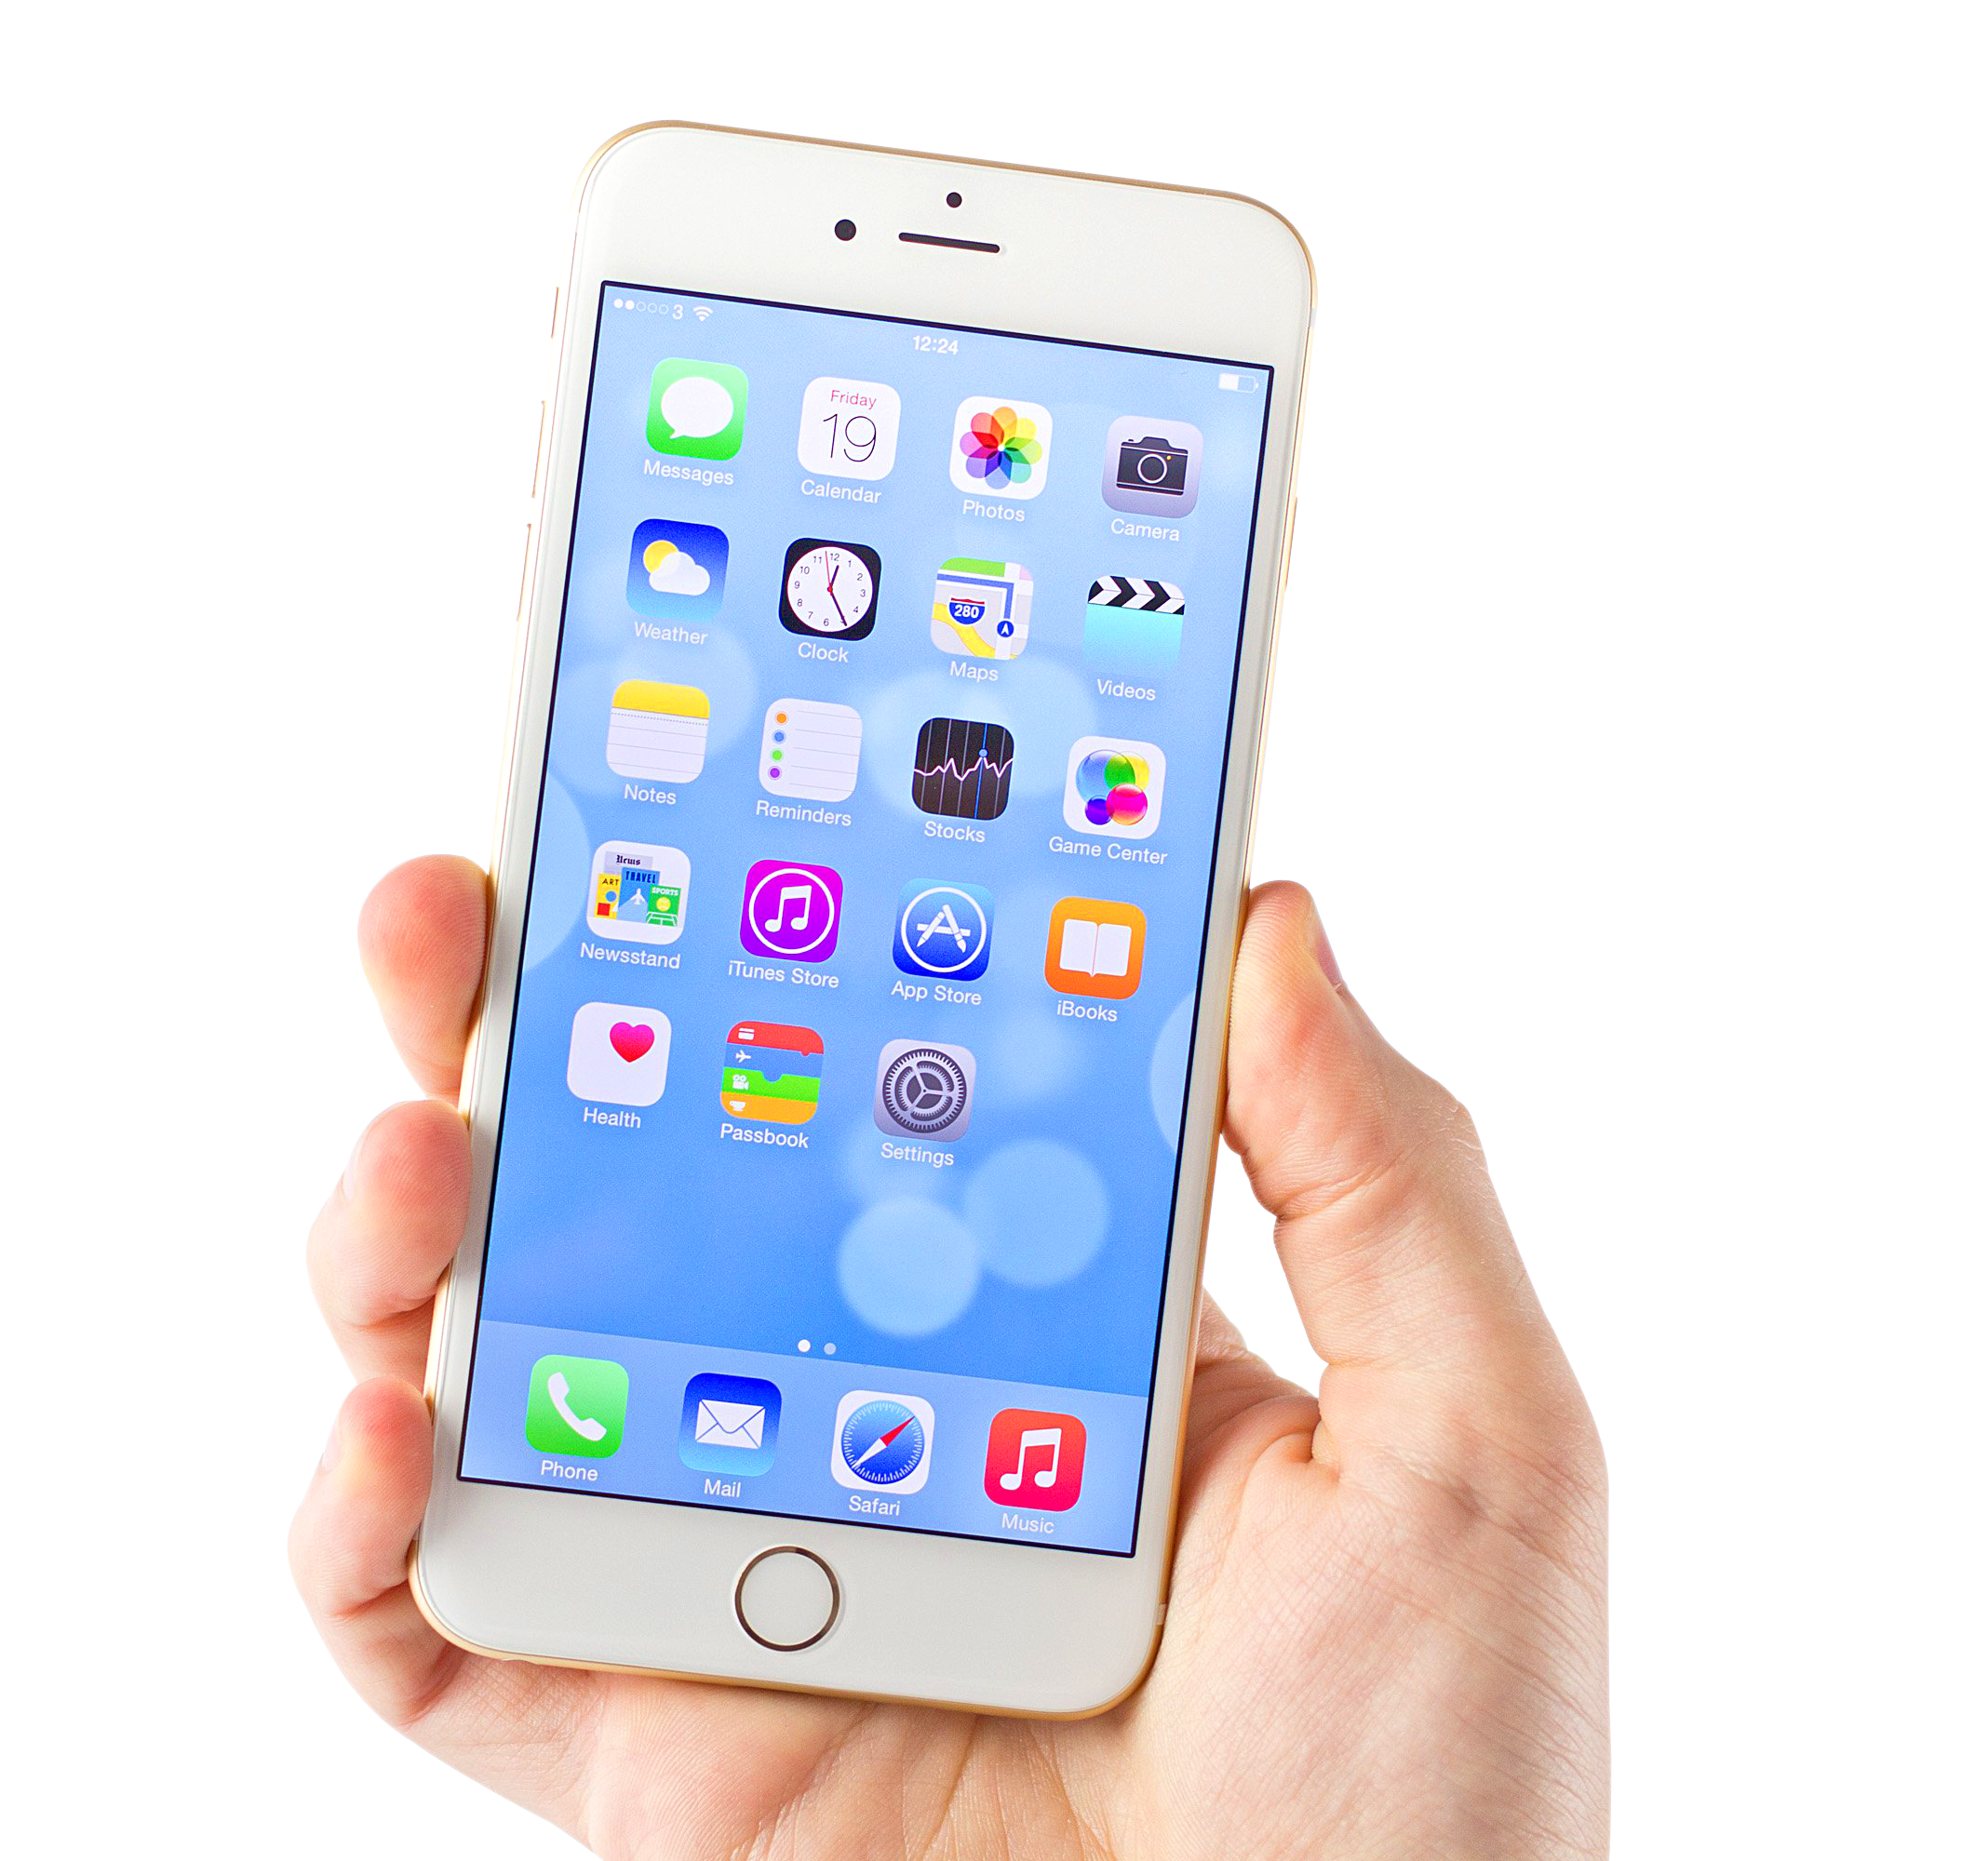 White Iphone 6 Png Image Iphone Application Iphone White Iphone